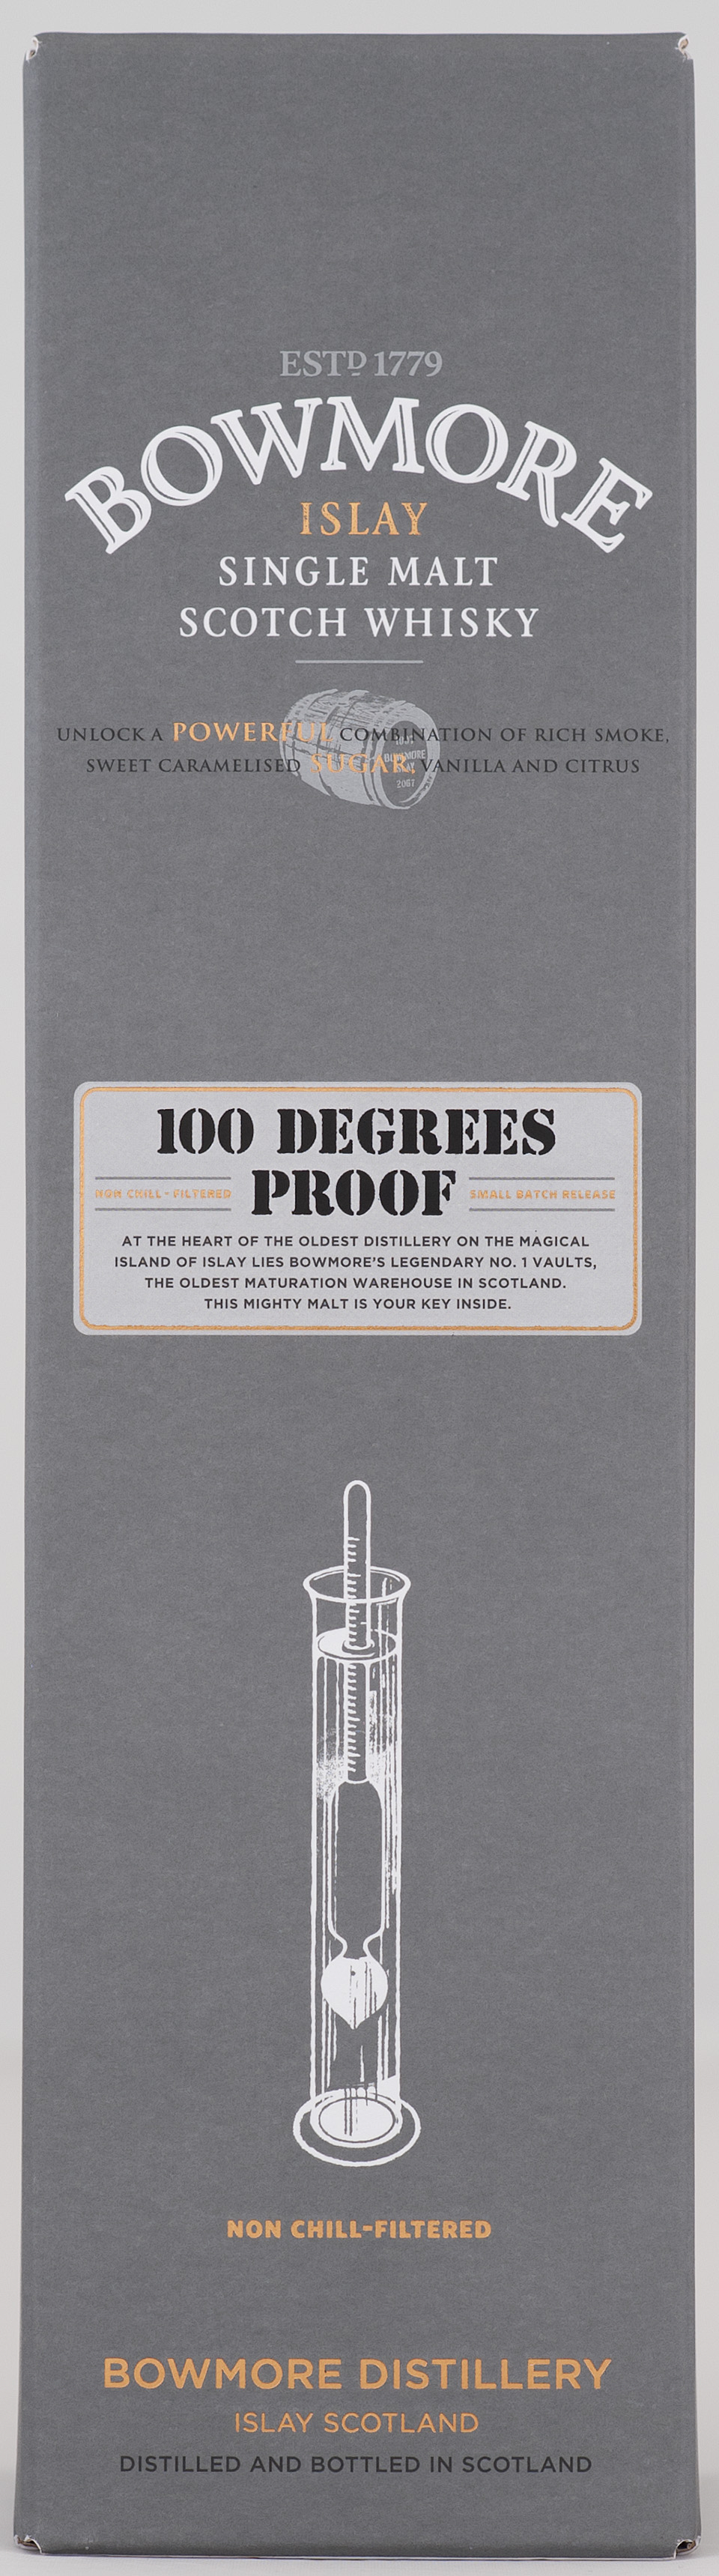 Billede: _DSC5614 Bowmore 100 Degrees Proof - box front.jpg